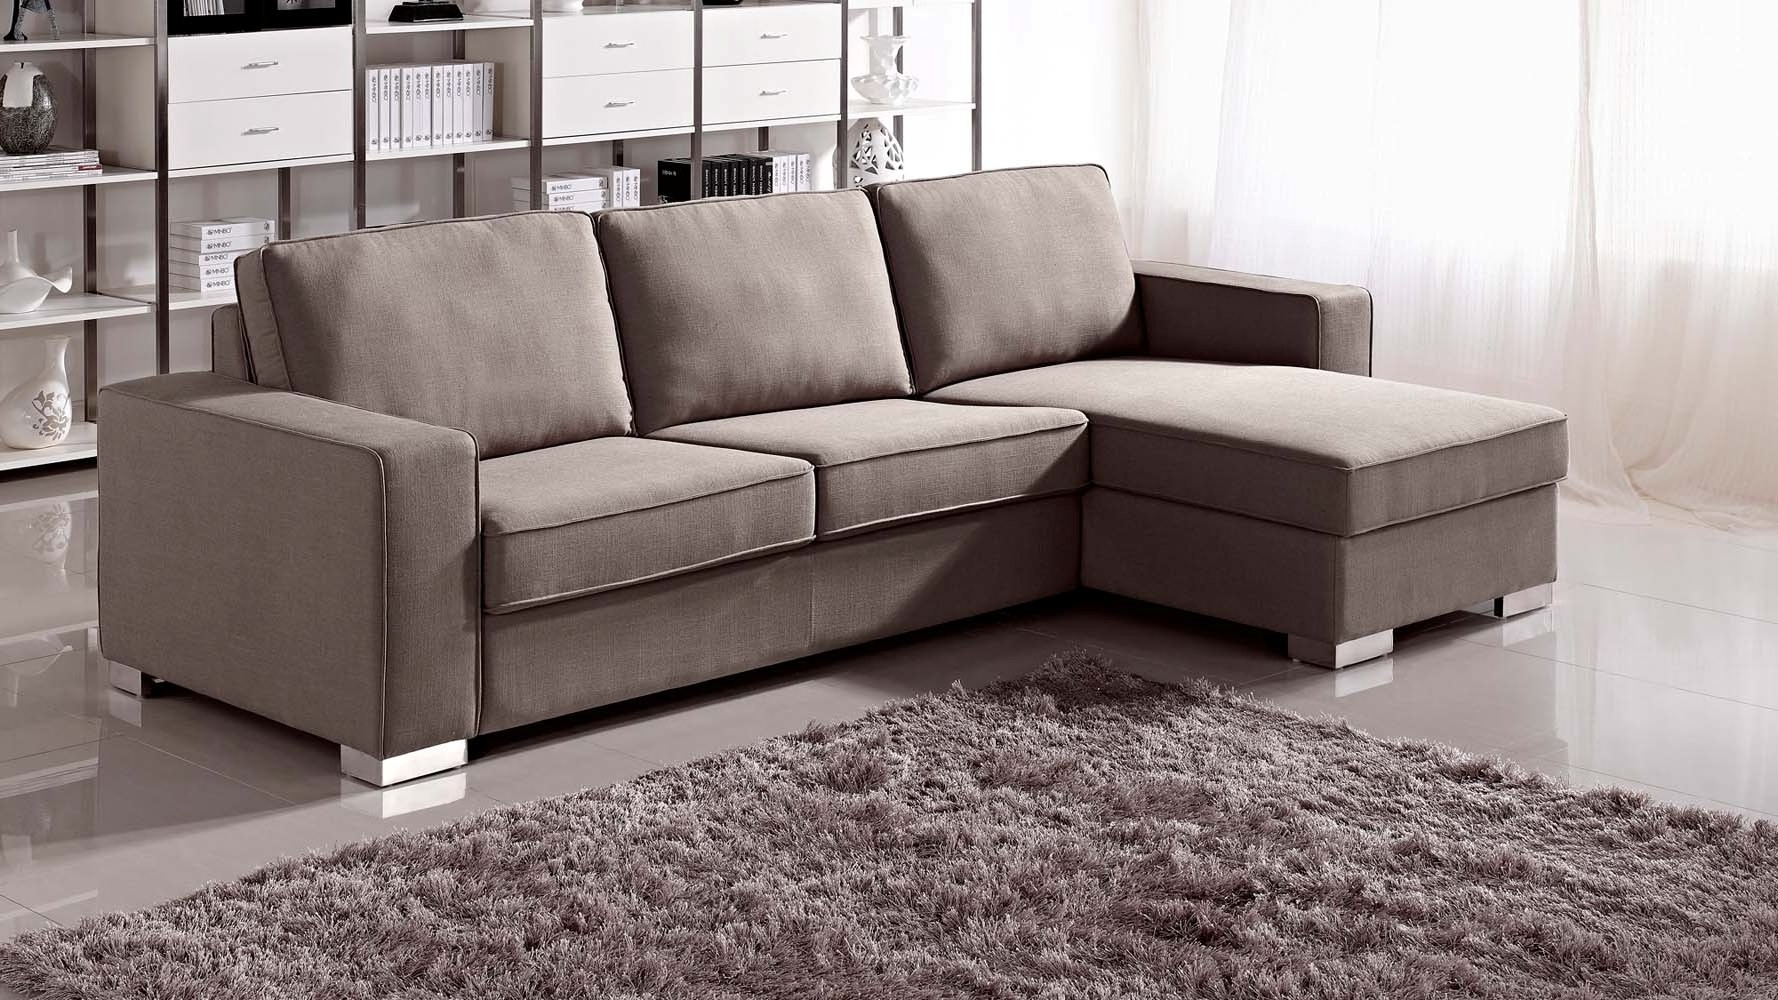 Widely Used Sectional Sofas With Queen Size Sleeper Within Innovative Sofa Sleeper Sectionals Beautiful Interior Design Style (View 15 of 15)